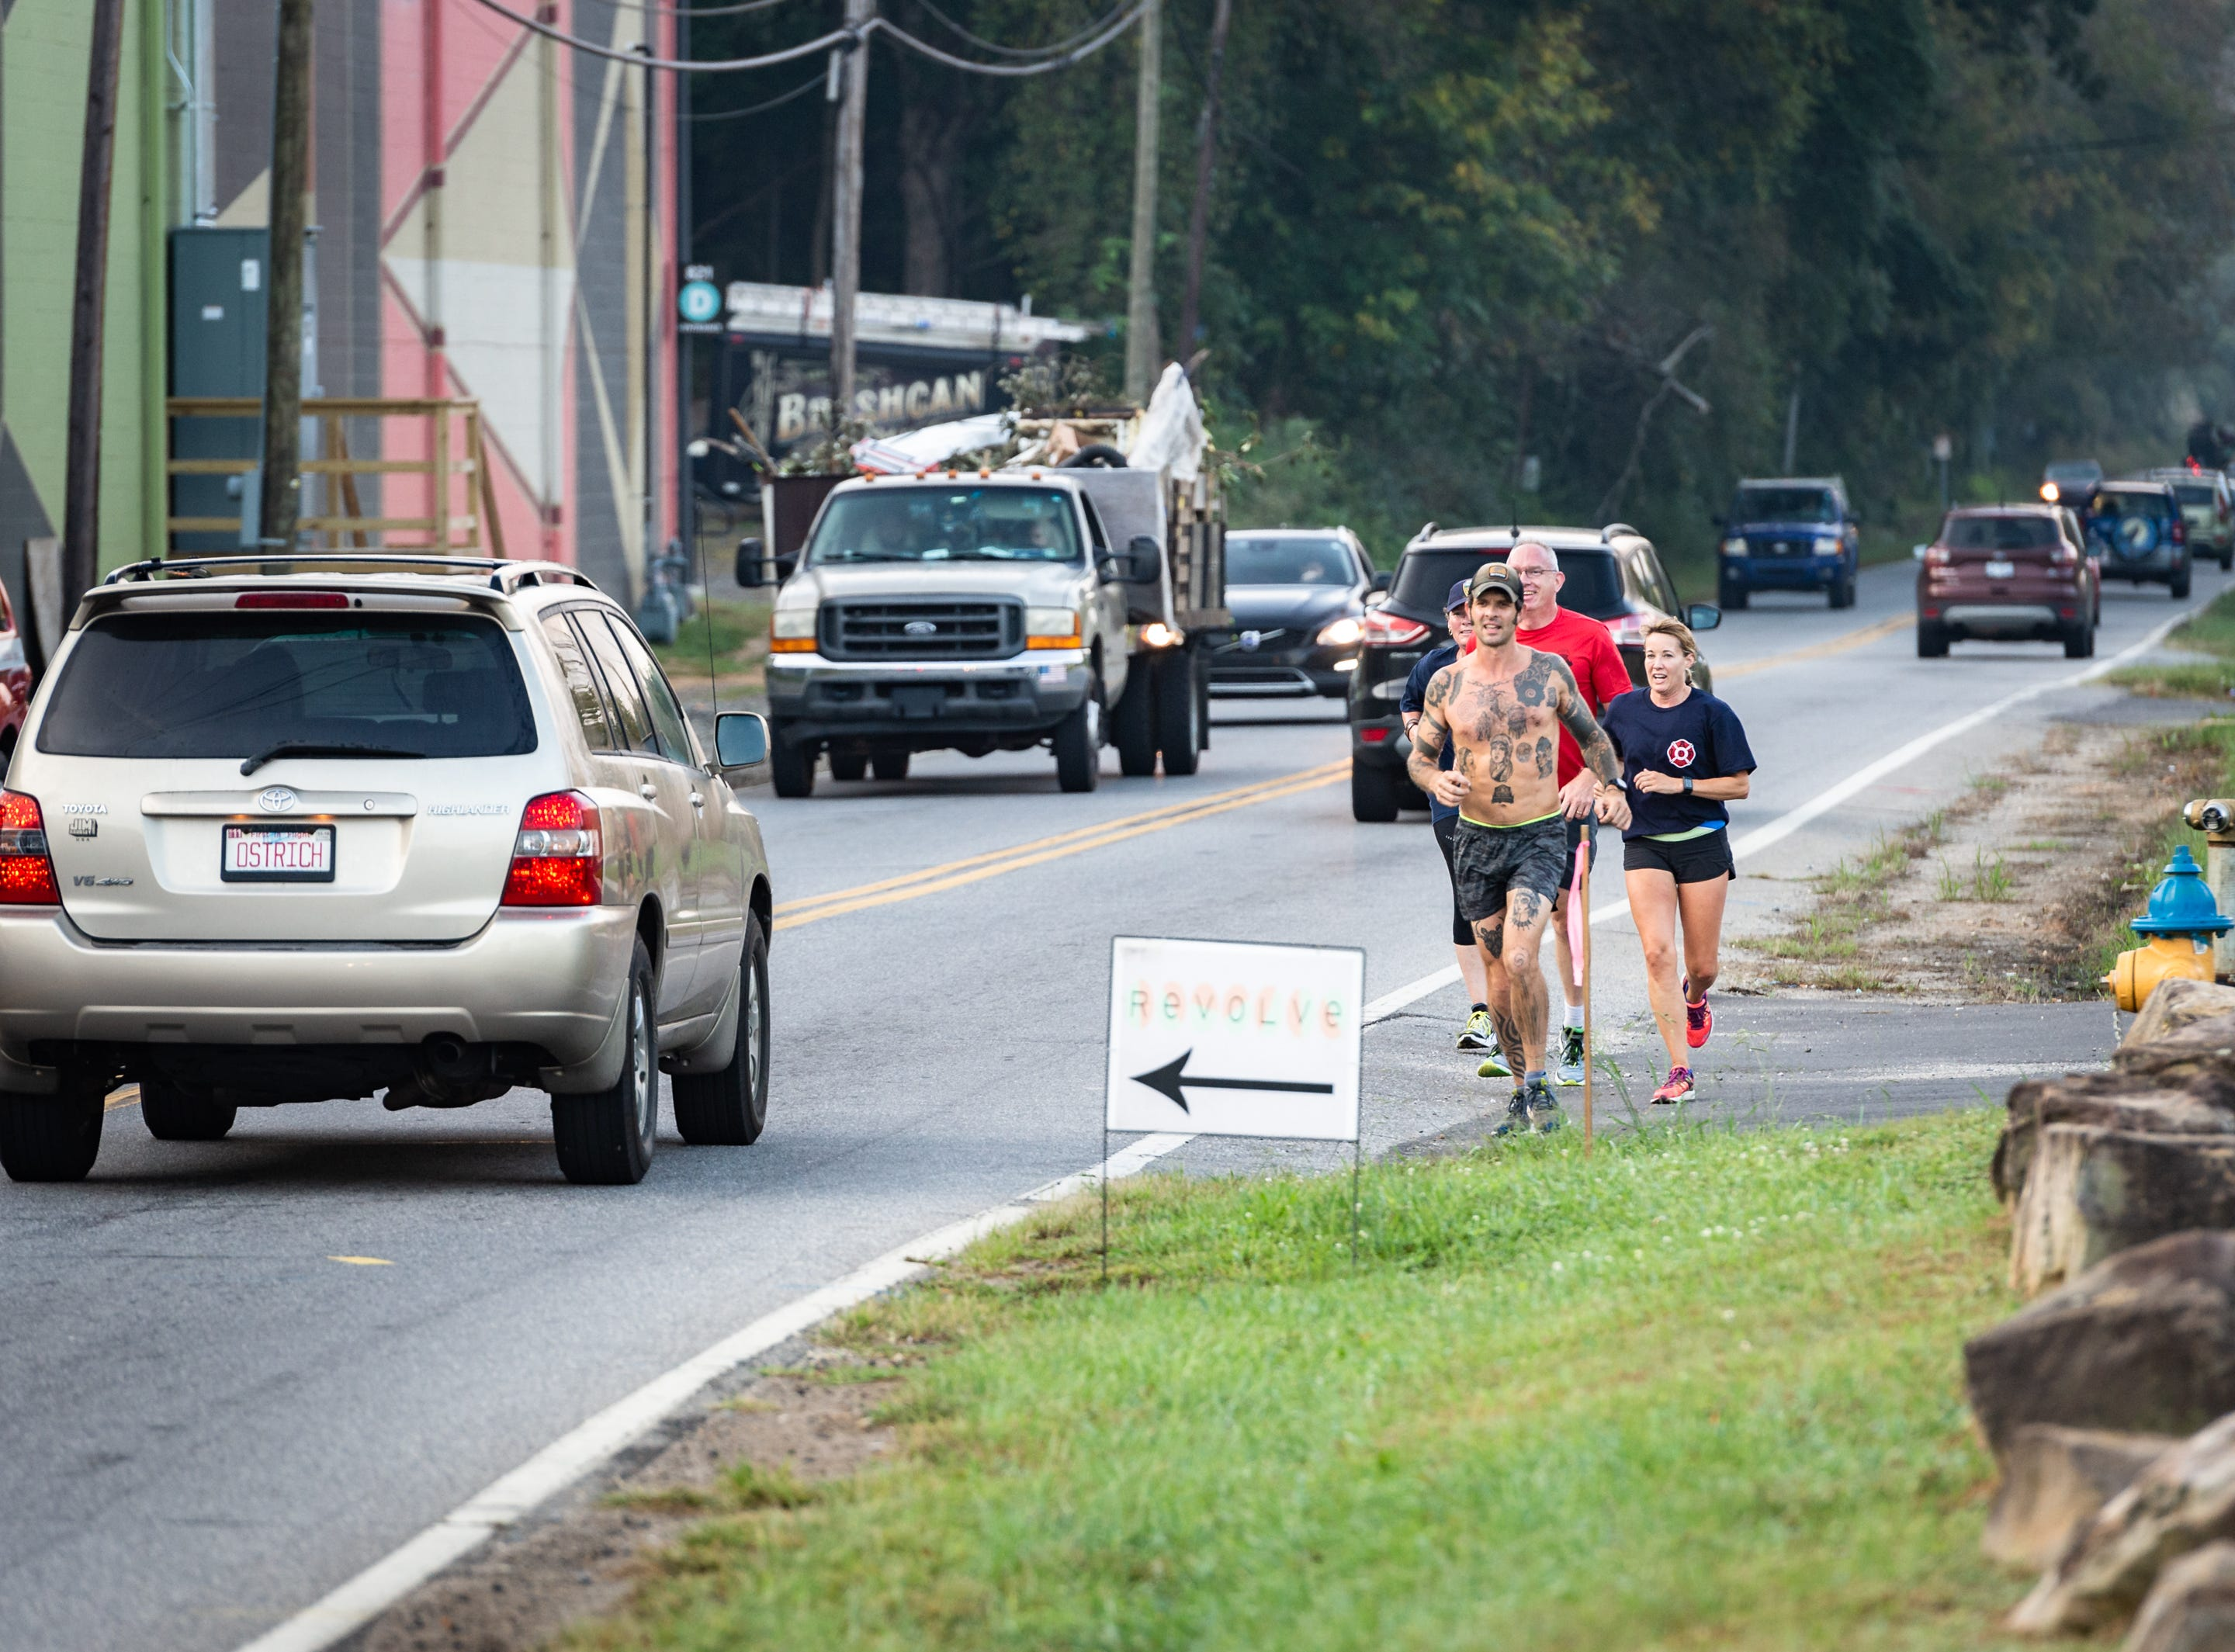 Mikey Riley, an Asheville firefighter, runs down Riverside Drive with Chief Joy Ponder, Captain Steve Wickam and Angela Wyricks at the beginning of his 100k to Ebbs Chapel and back Oct. 8, 2018. Riley is running one mile for every firefighter who has ever been diagnosed with cancer in an effort to raise awareness of firefighters' higher risk of cancer than the general population.